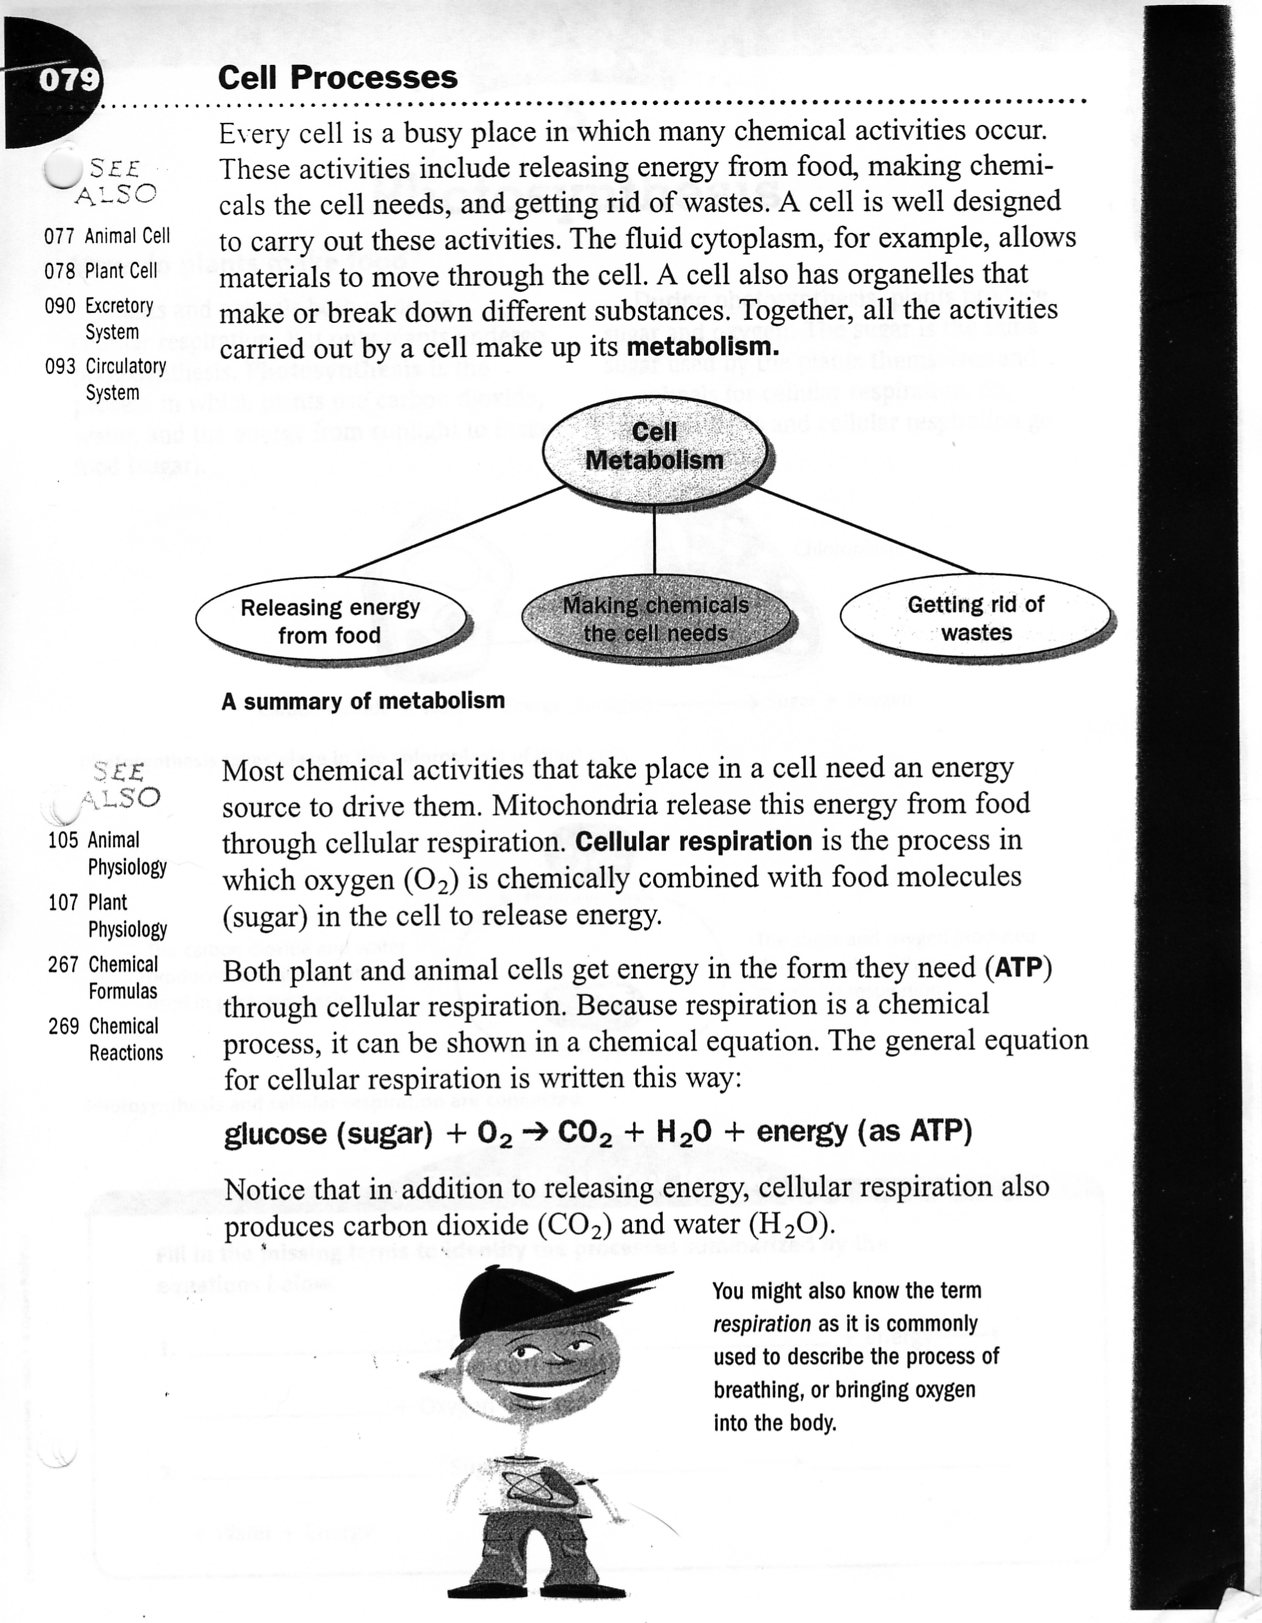 cellular respiration diagram worksheet fetal pig digestive system labeled photosynthesis answers